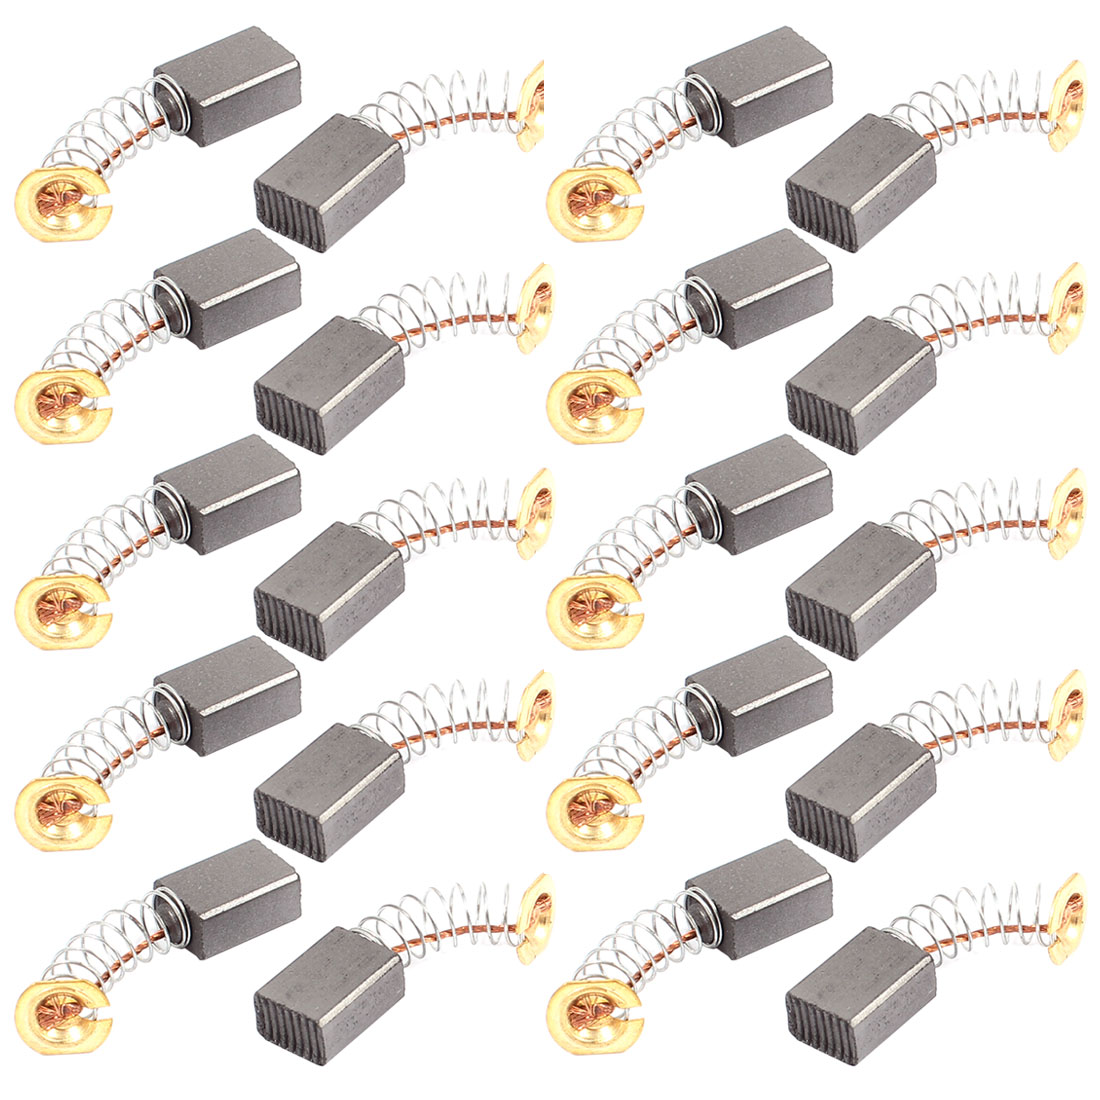 20 Pcs Replacement Electric Motor Carbon Brushes 12mm x 9mm x 6mm for Motors